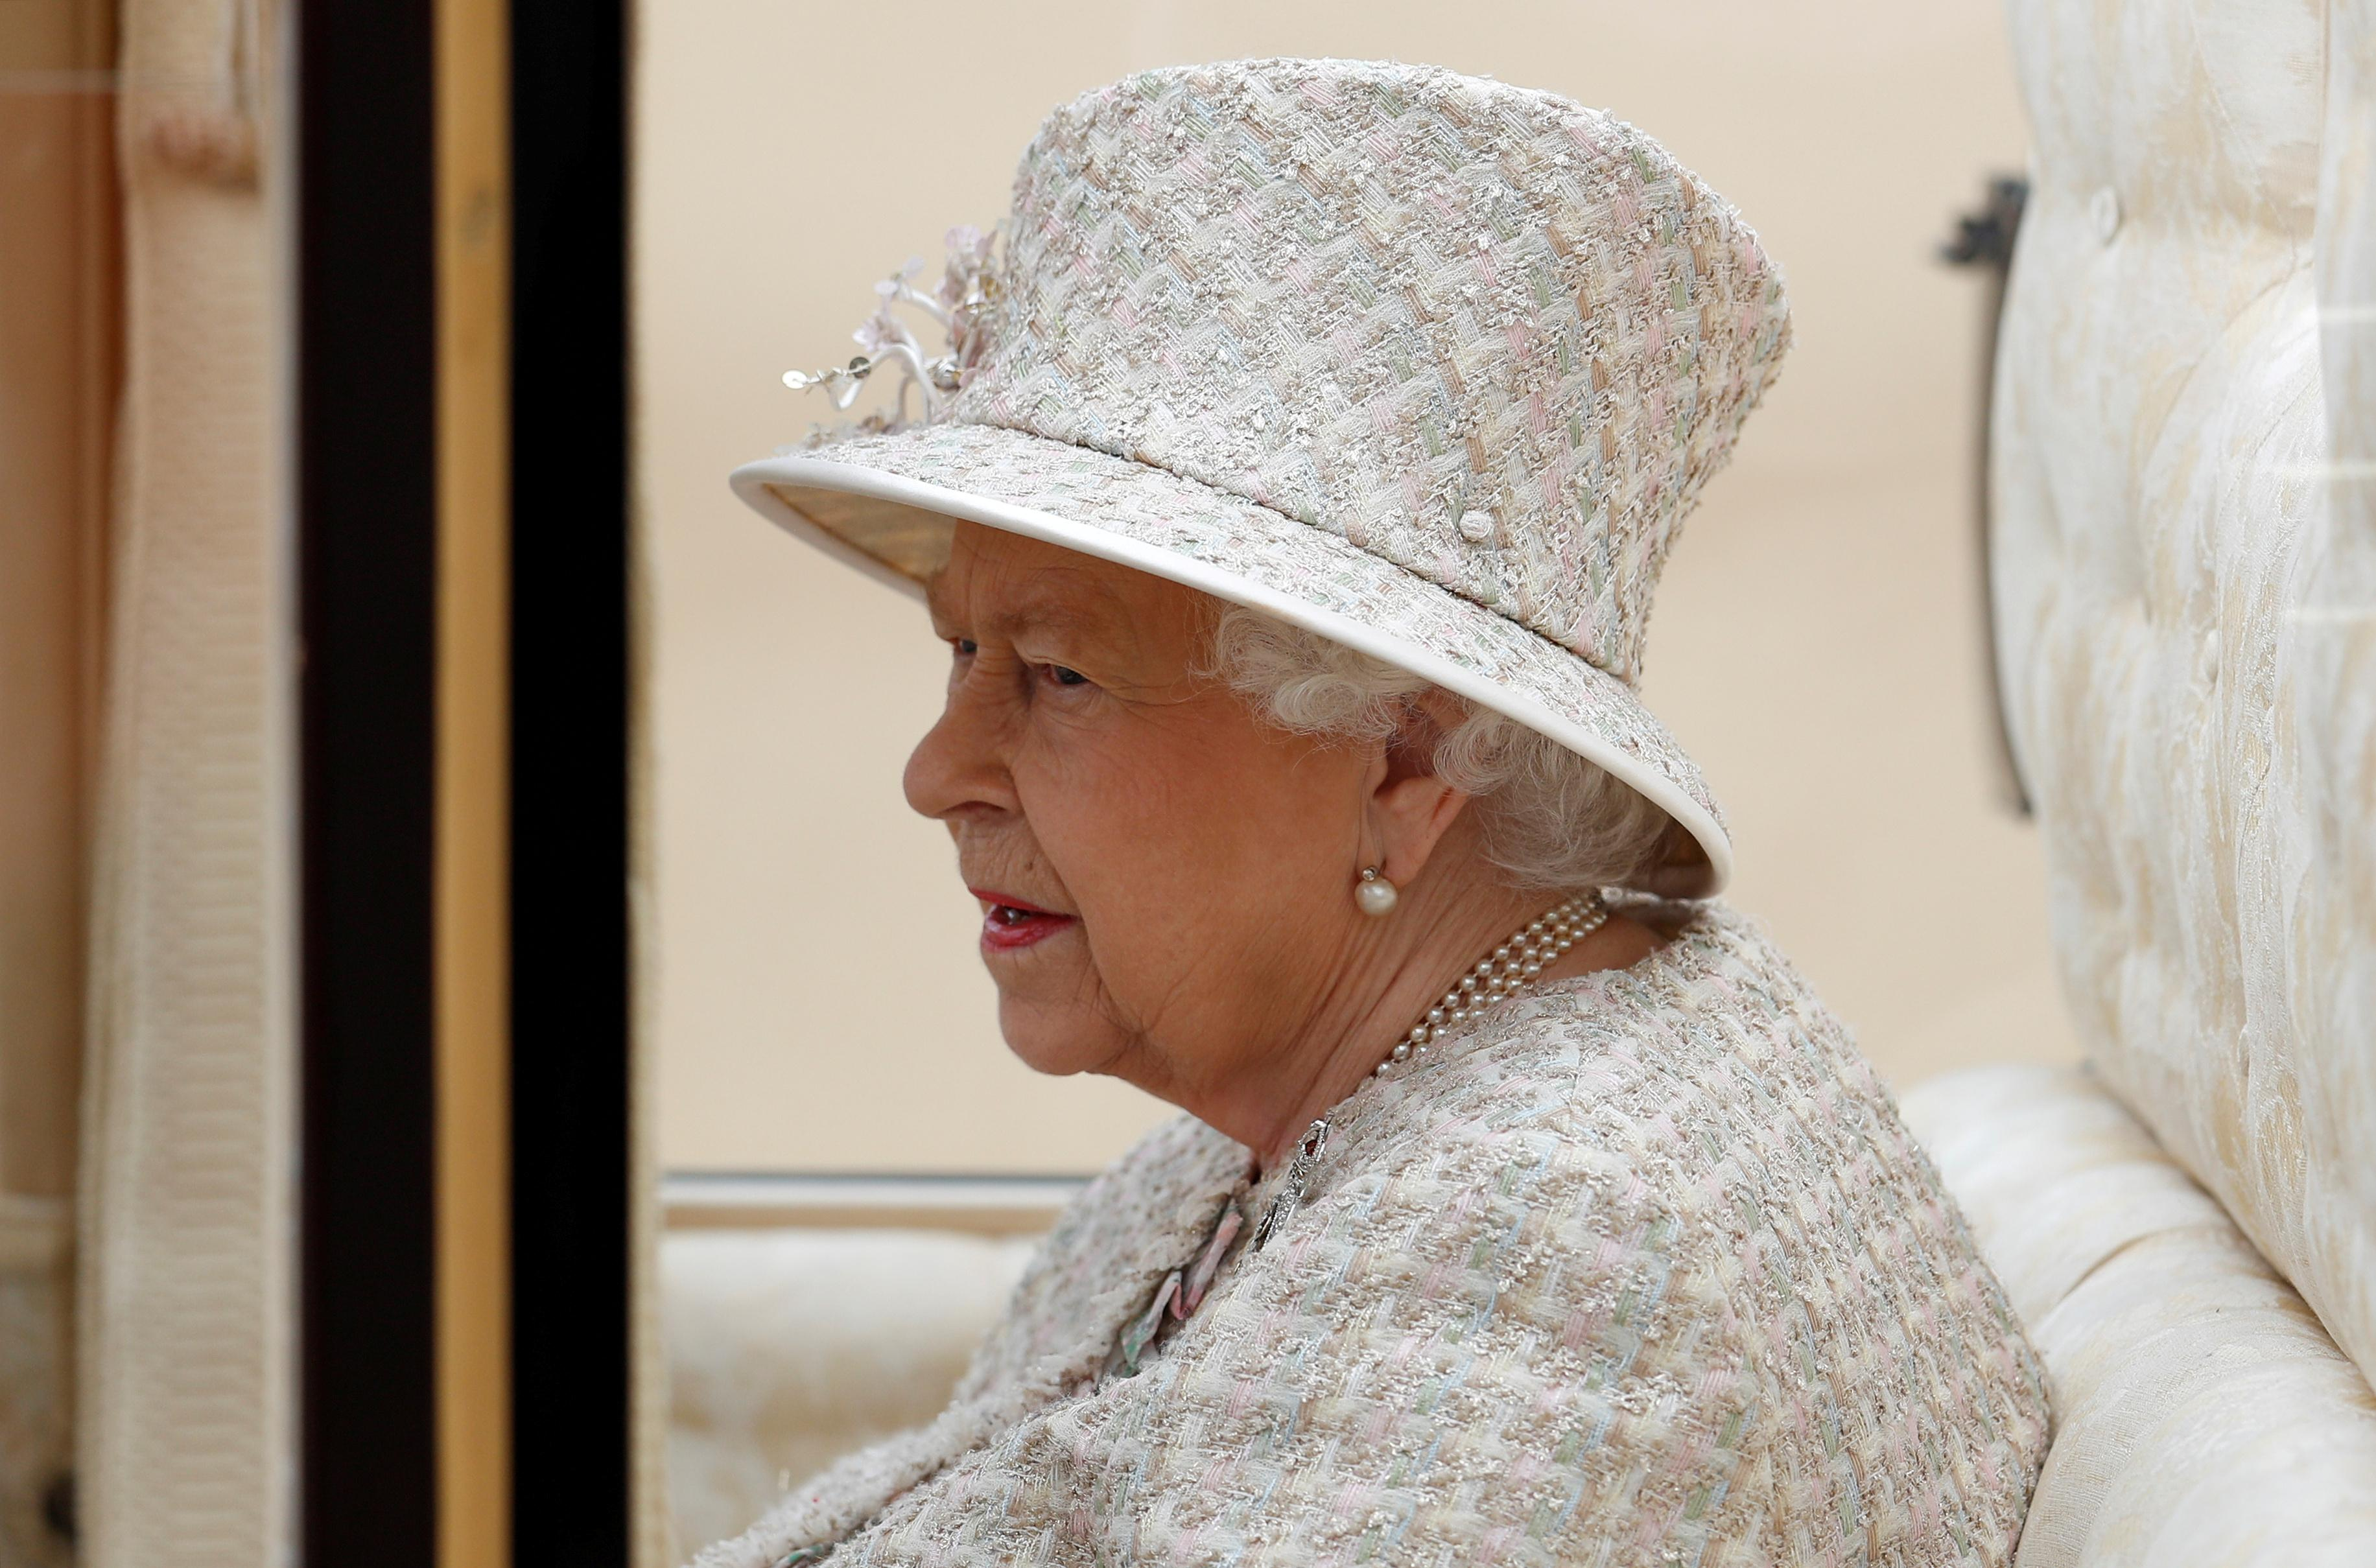 Queen did not challenge suspension of UK parliament - Rees-Mogg